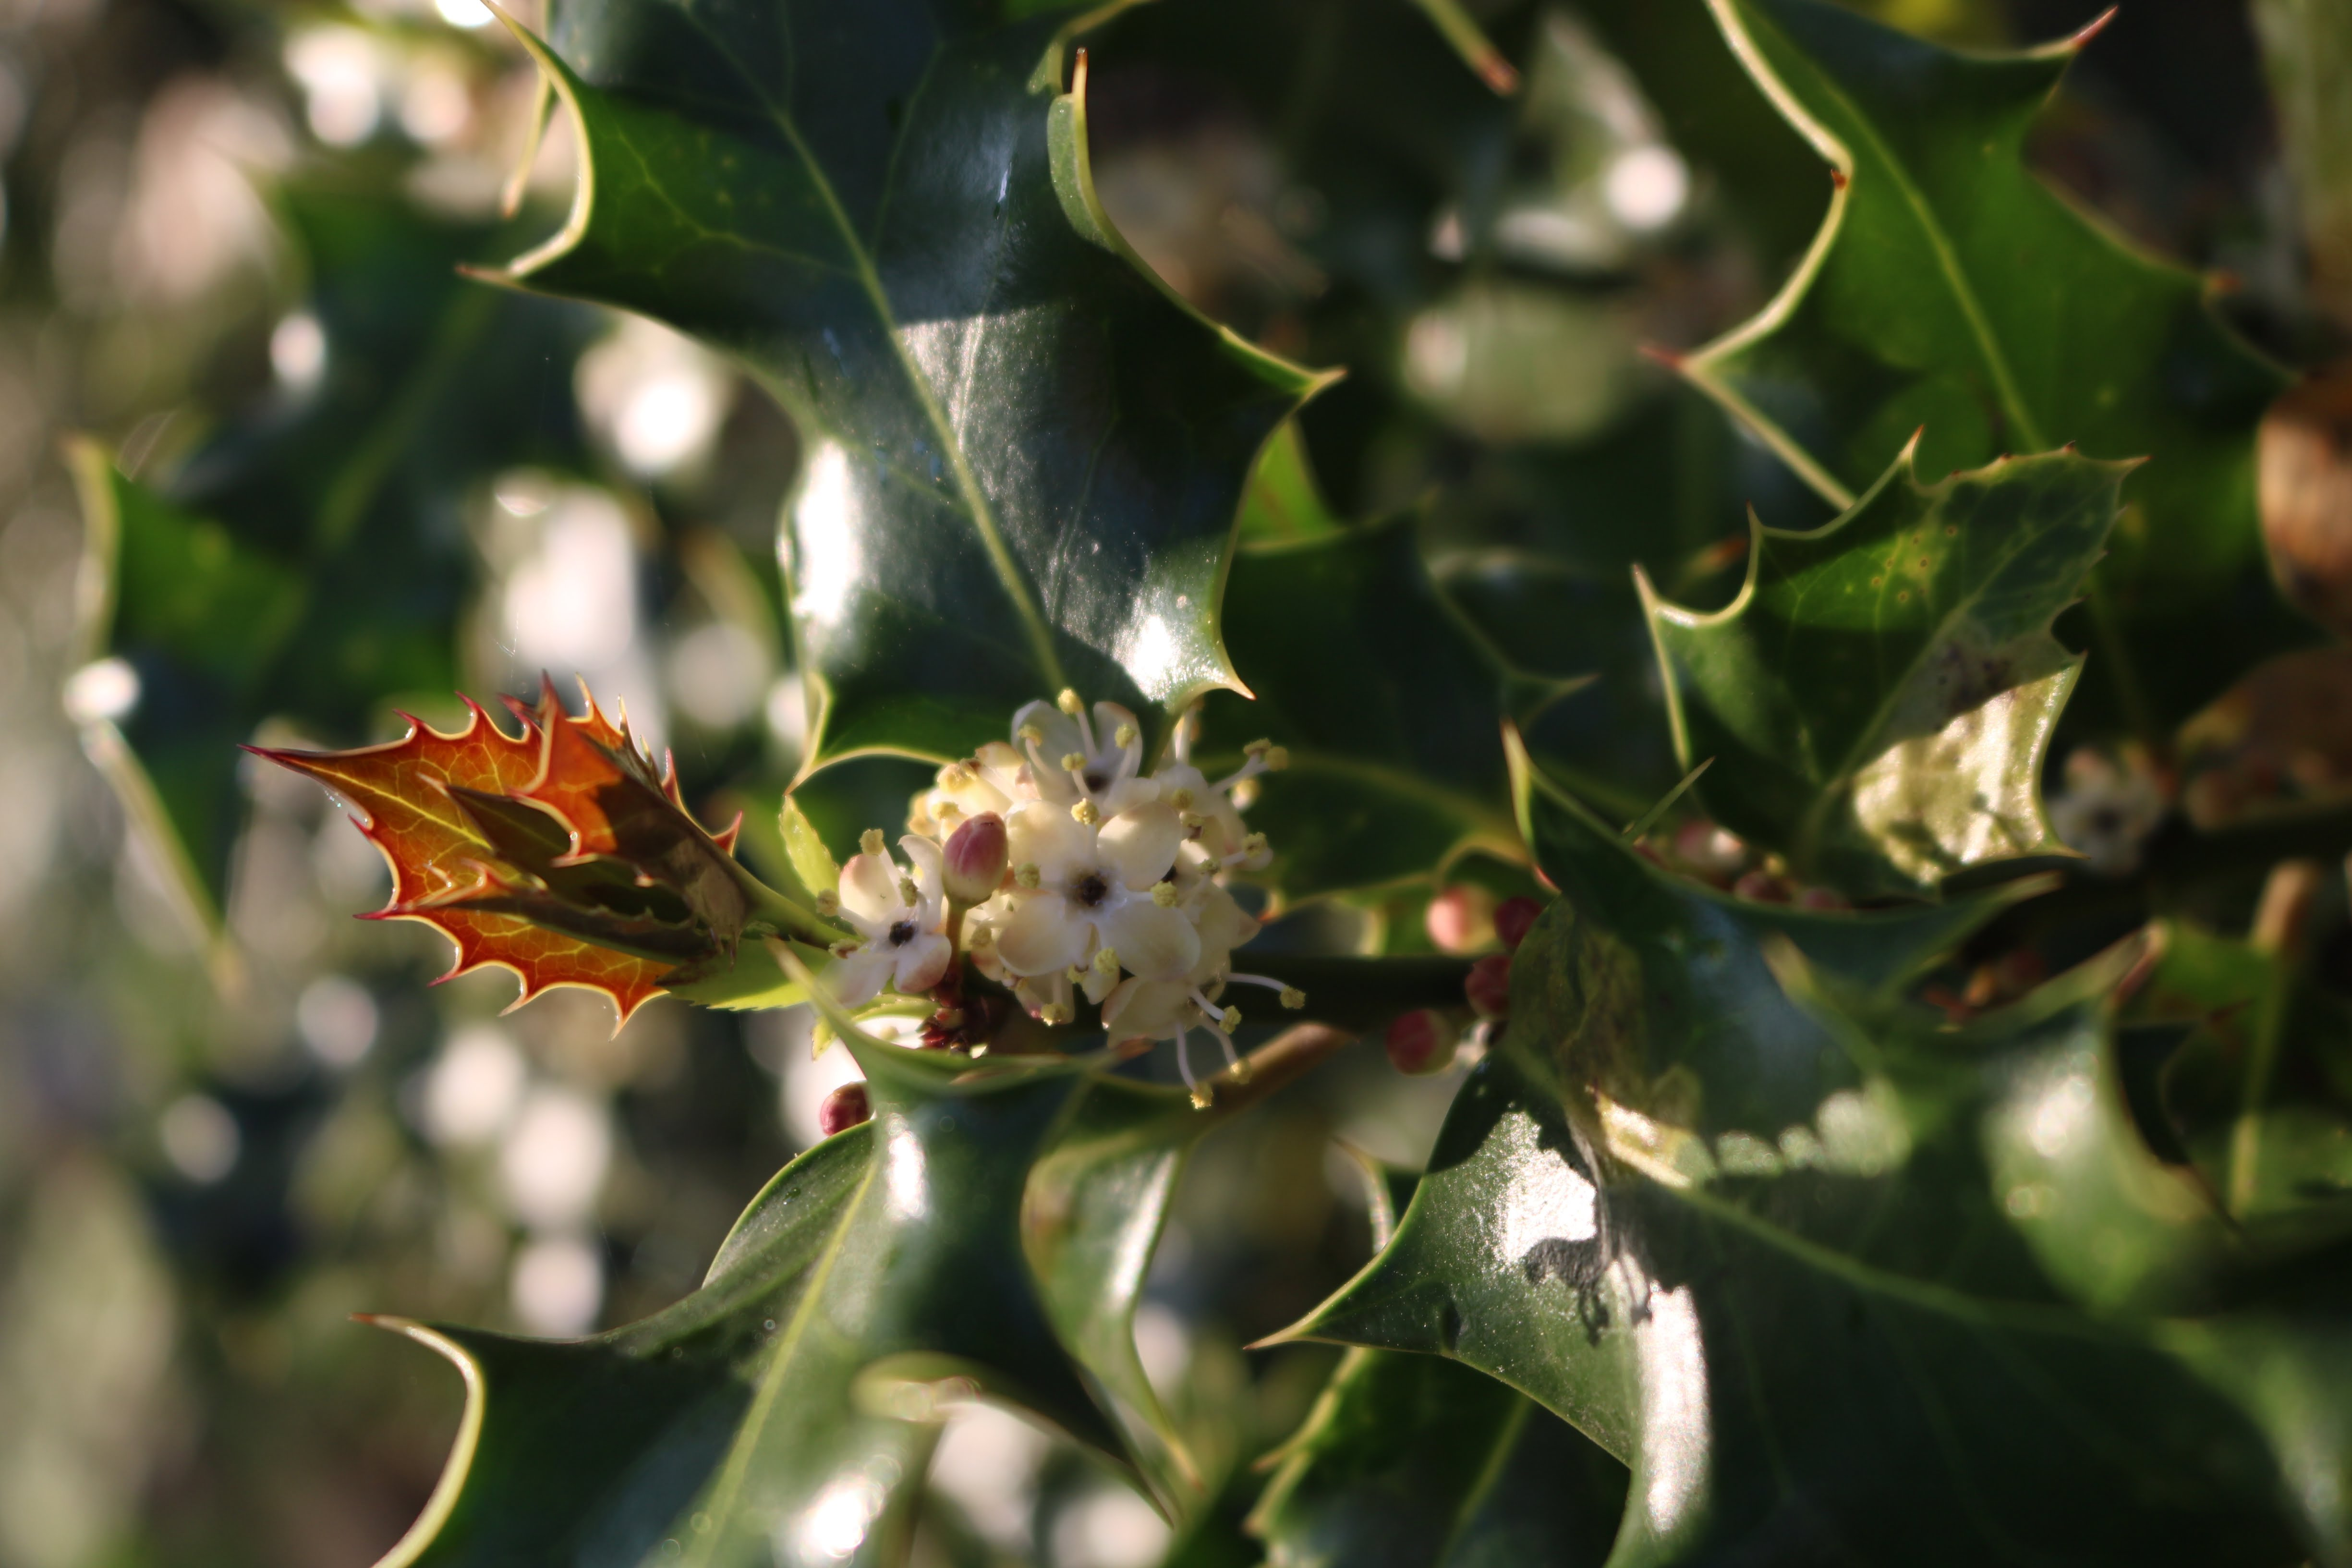 Small white flowers of Holly (Ilex aquifolium) amid the prickly, glossy leaves in bright sunlight